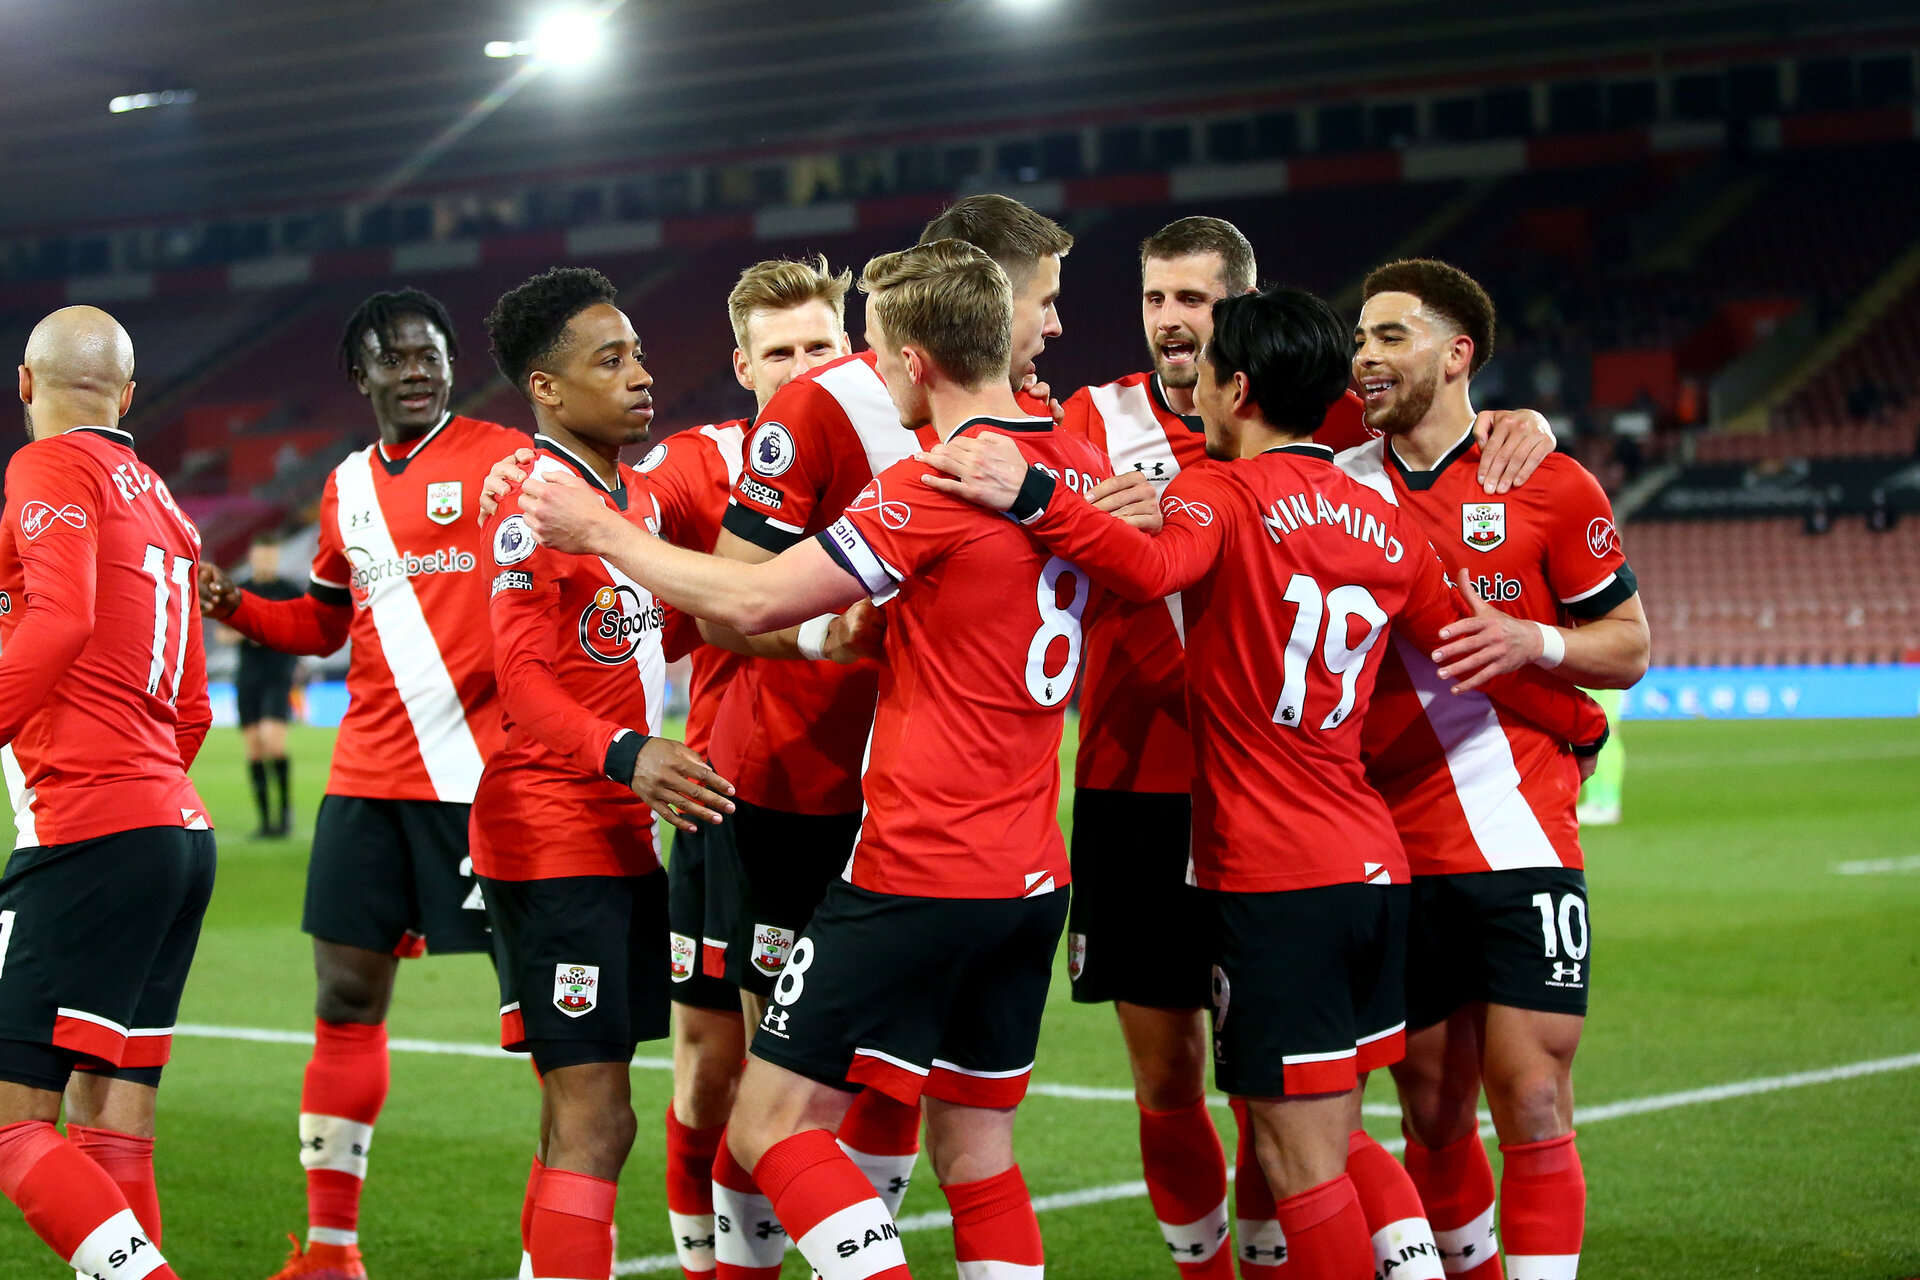 SOUTHAMPTON, ENGLAND - APRIL 30:  during the Premier League match between Southampton and Leicester City at St Mary's Stadium on April 30, 2021 in Southampton, England. Sporting stadiums around the UK remain under strict restrictions due to the Coronavirus Pandemic as Government social distancing laws prohibit fans inside venues resulting in games being played behind closed doors.  (Photo by Isabelle Field/Southampton FC via Getty Images)